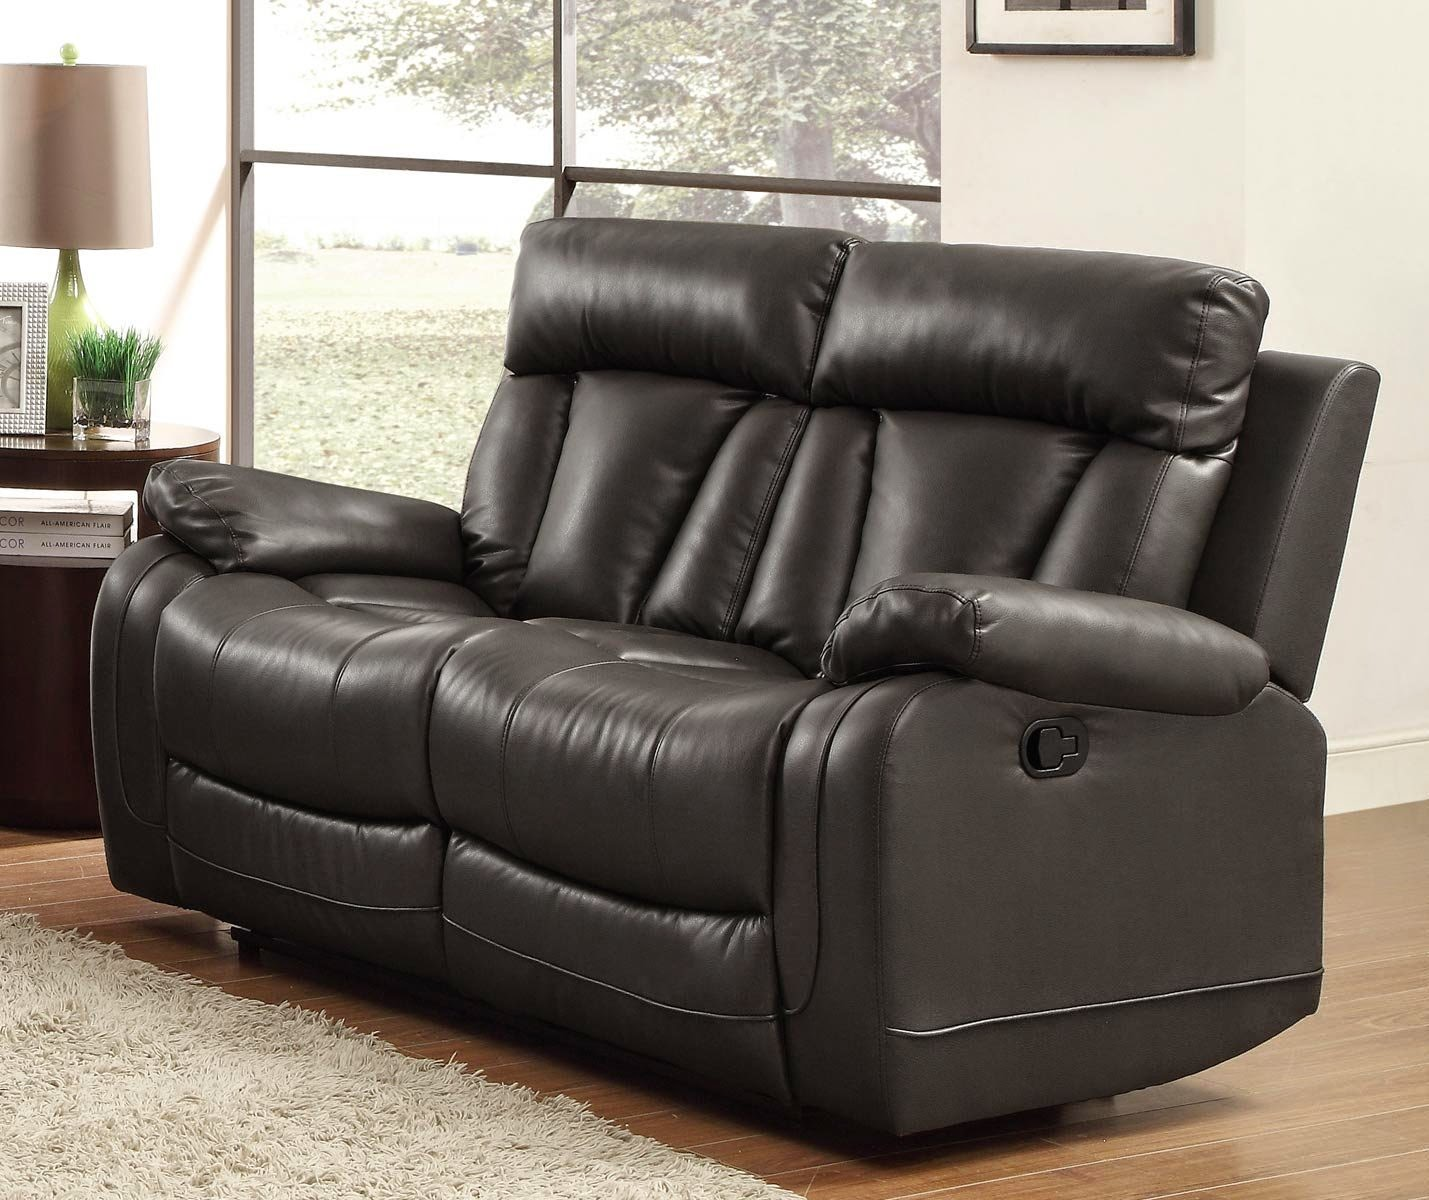 simmons blackjack cocoa reclining sofa and loveseat latest designs pictures 2018 cheap recliner sofas for sale: black leather ...